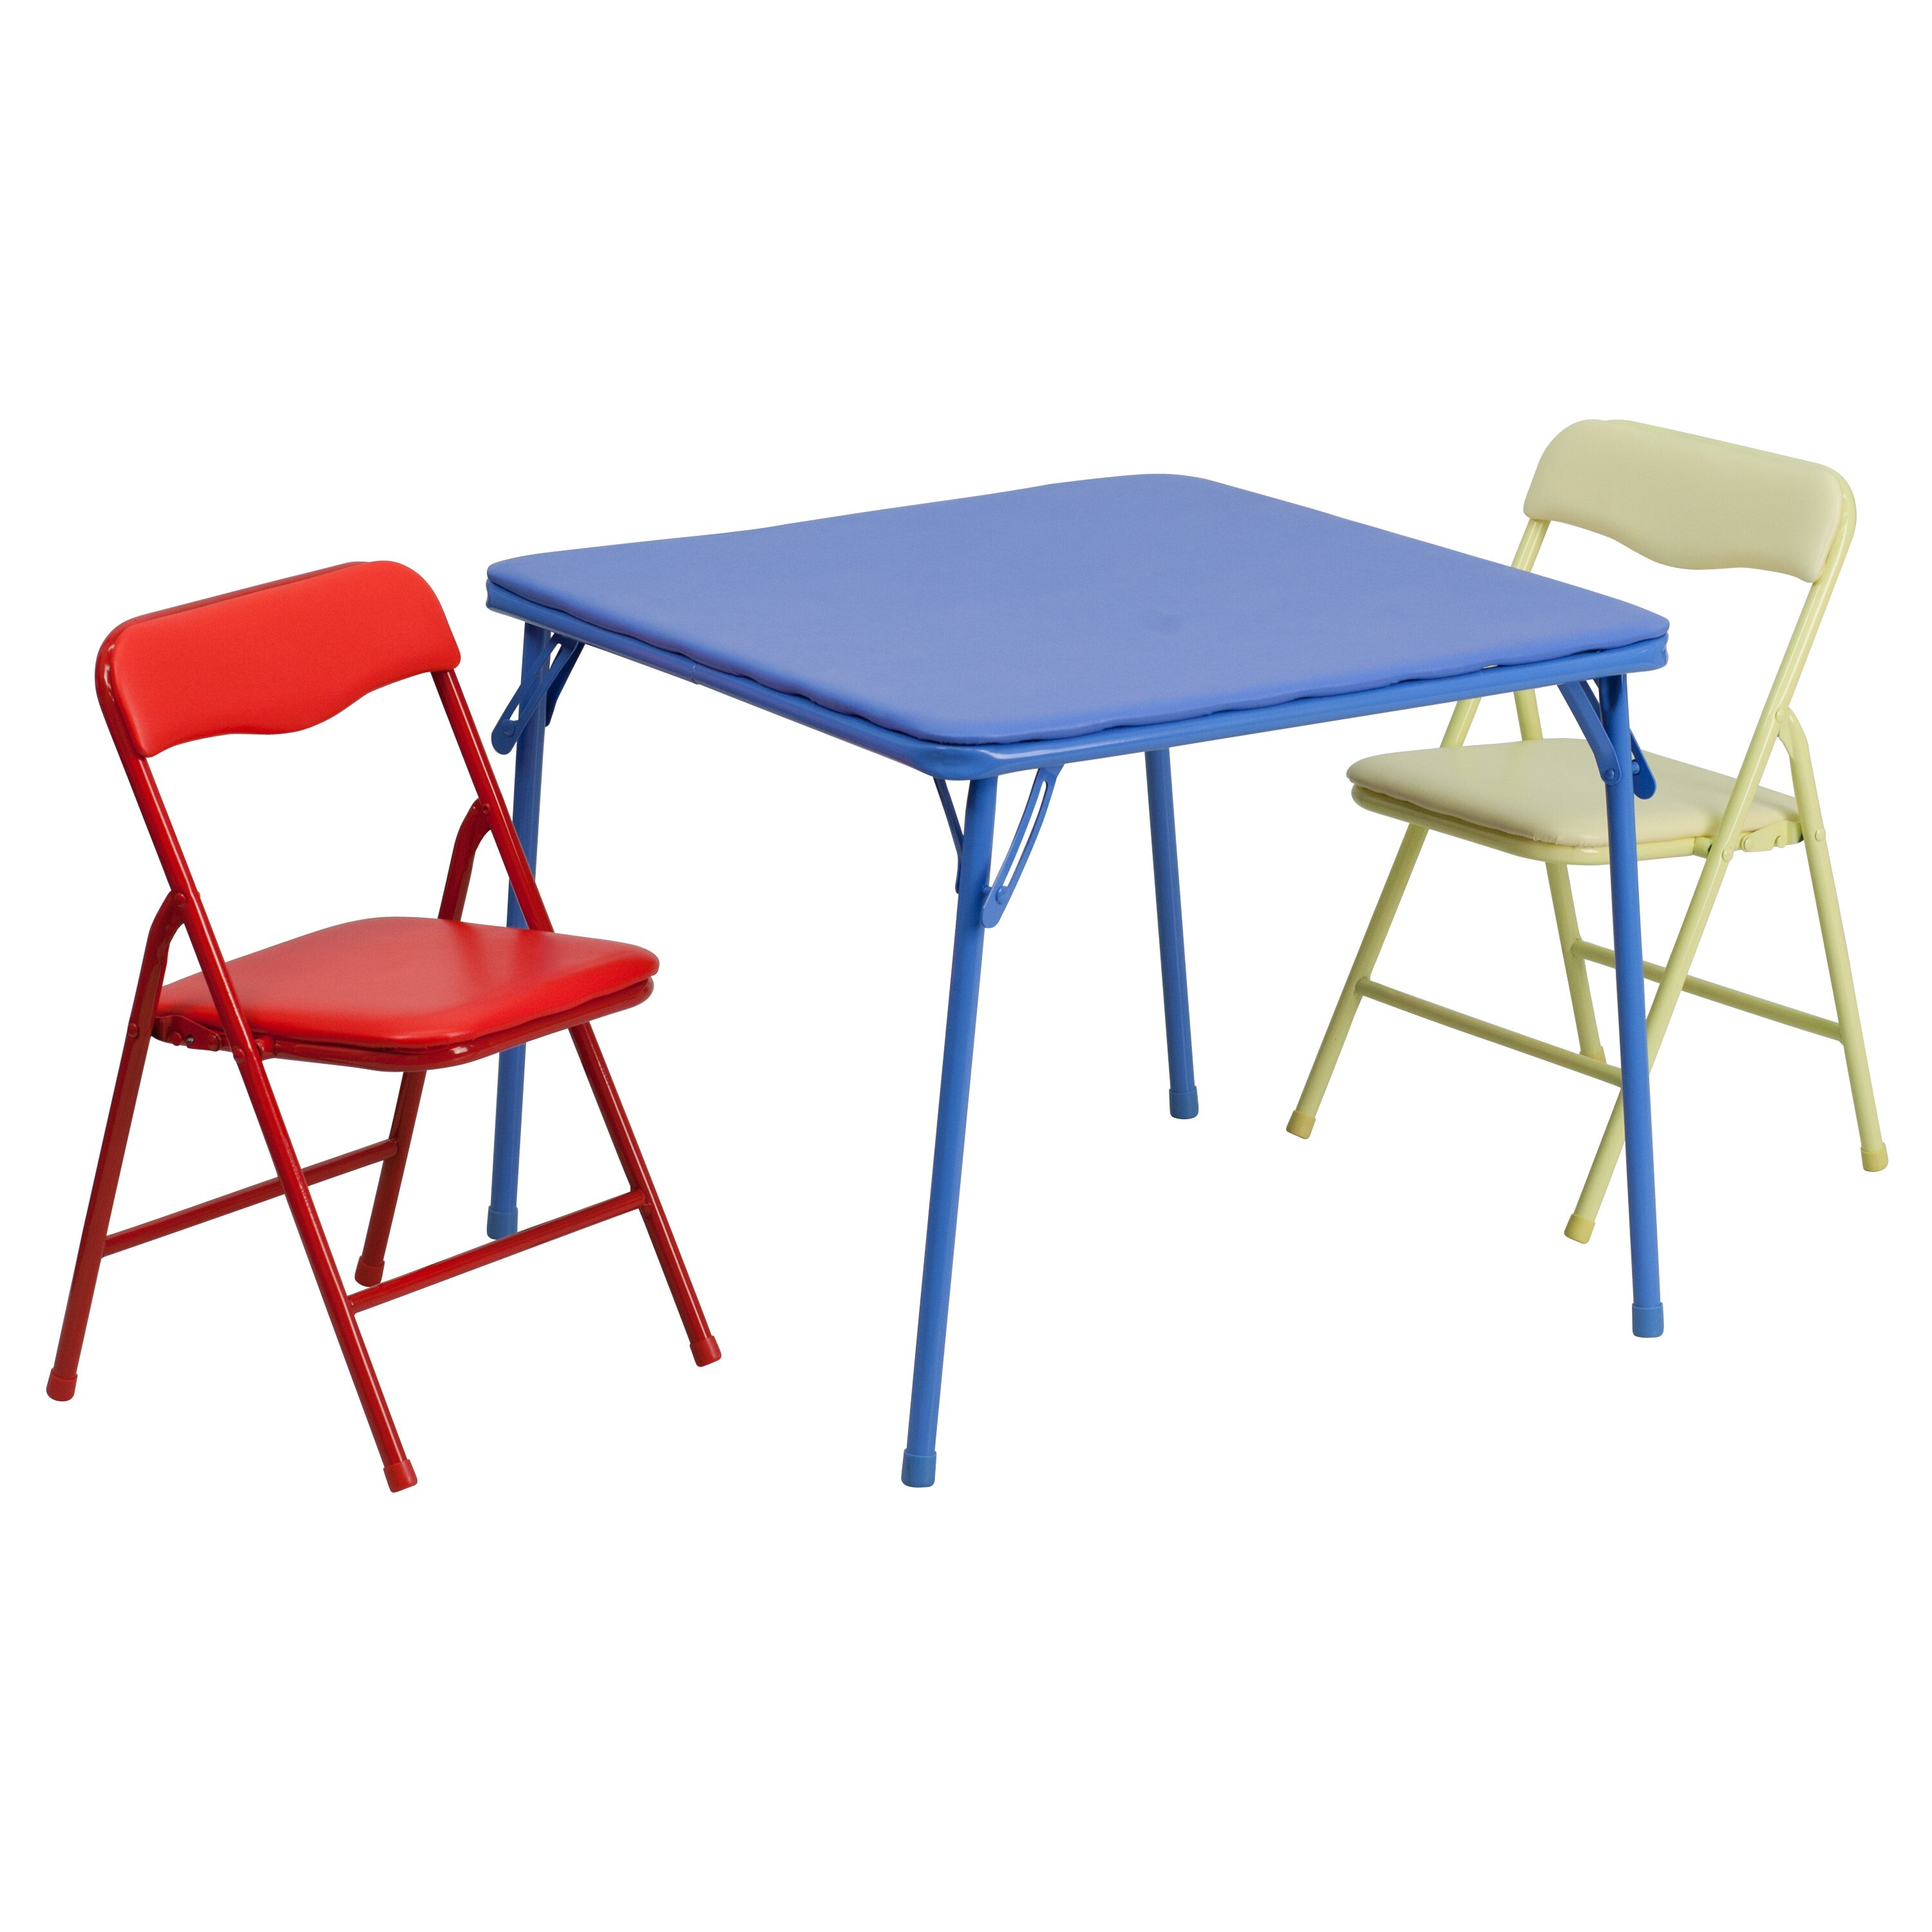 Flash Furniture Folding Kids 3 Piece Square Table and Chair Set – Chair and Table for Kids